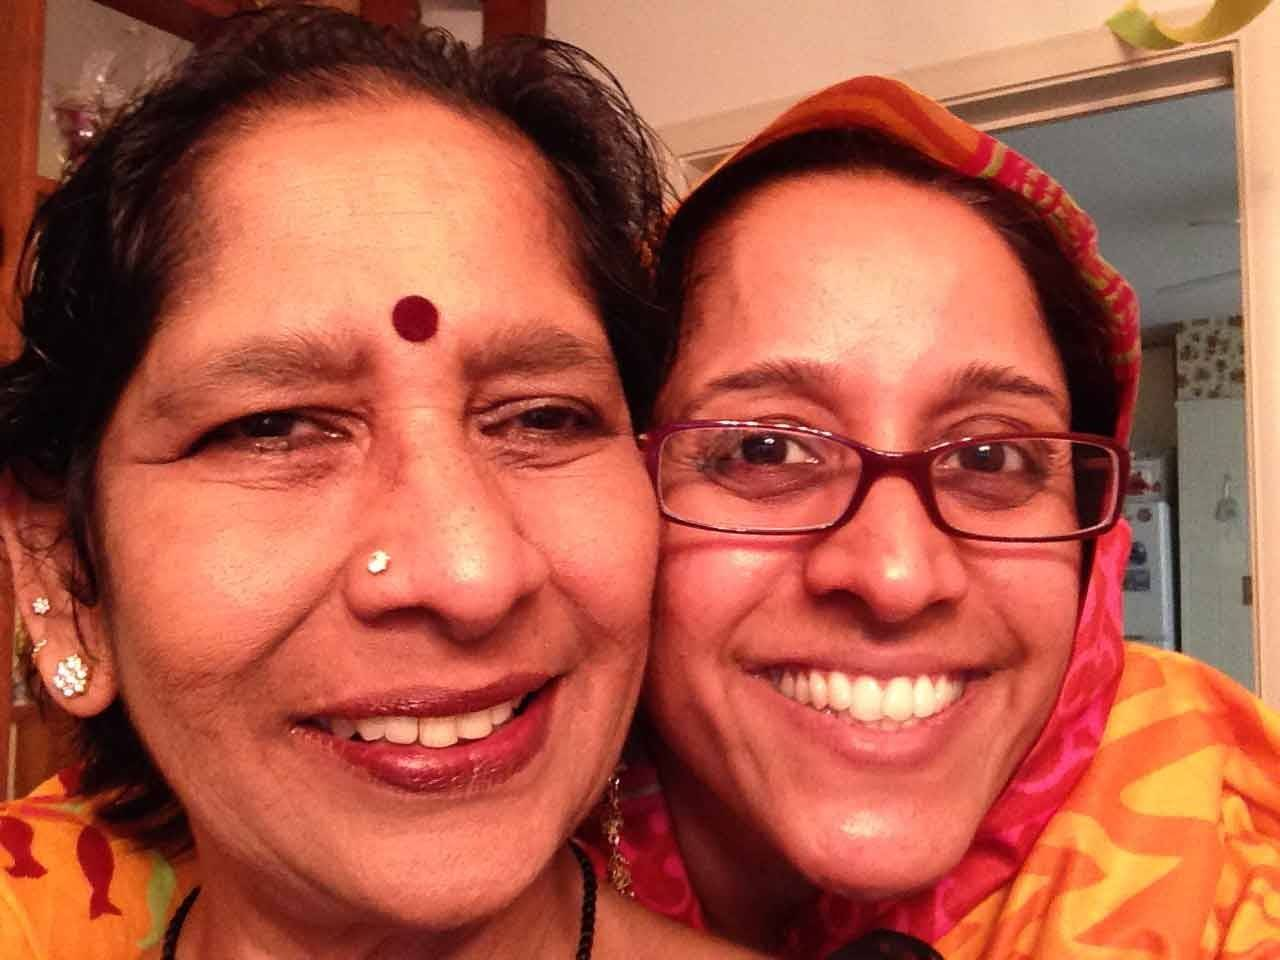 Reporter Madhu Krishnamurthy: Thank you for all that you do. Happy Mother's Day, Shyamala Krishnamurthy!